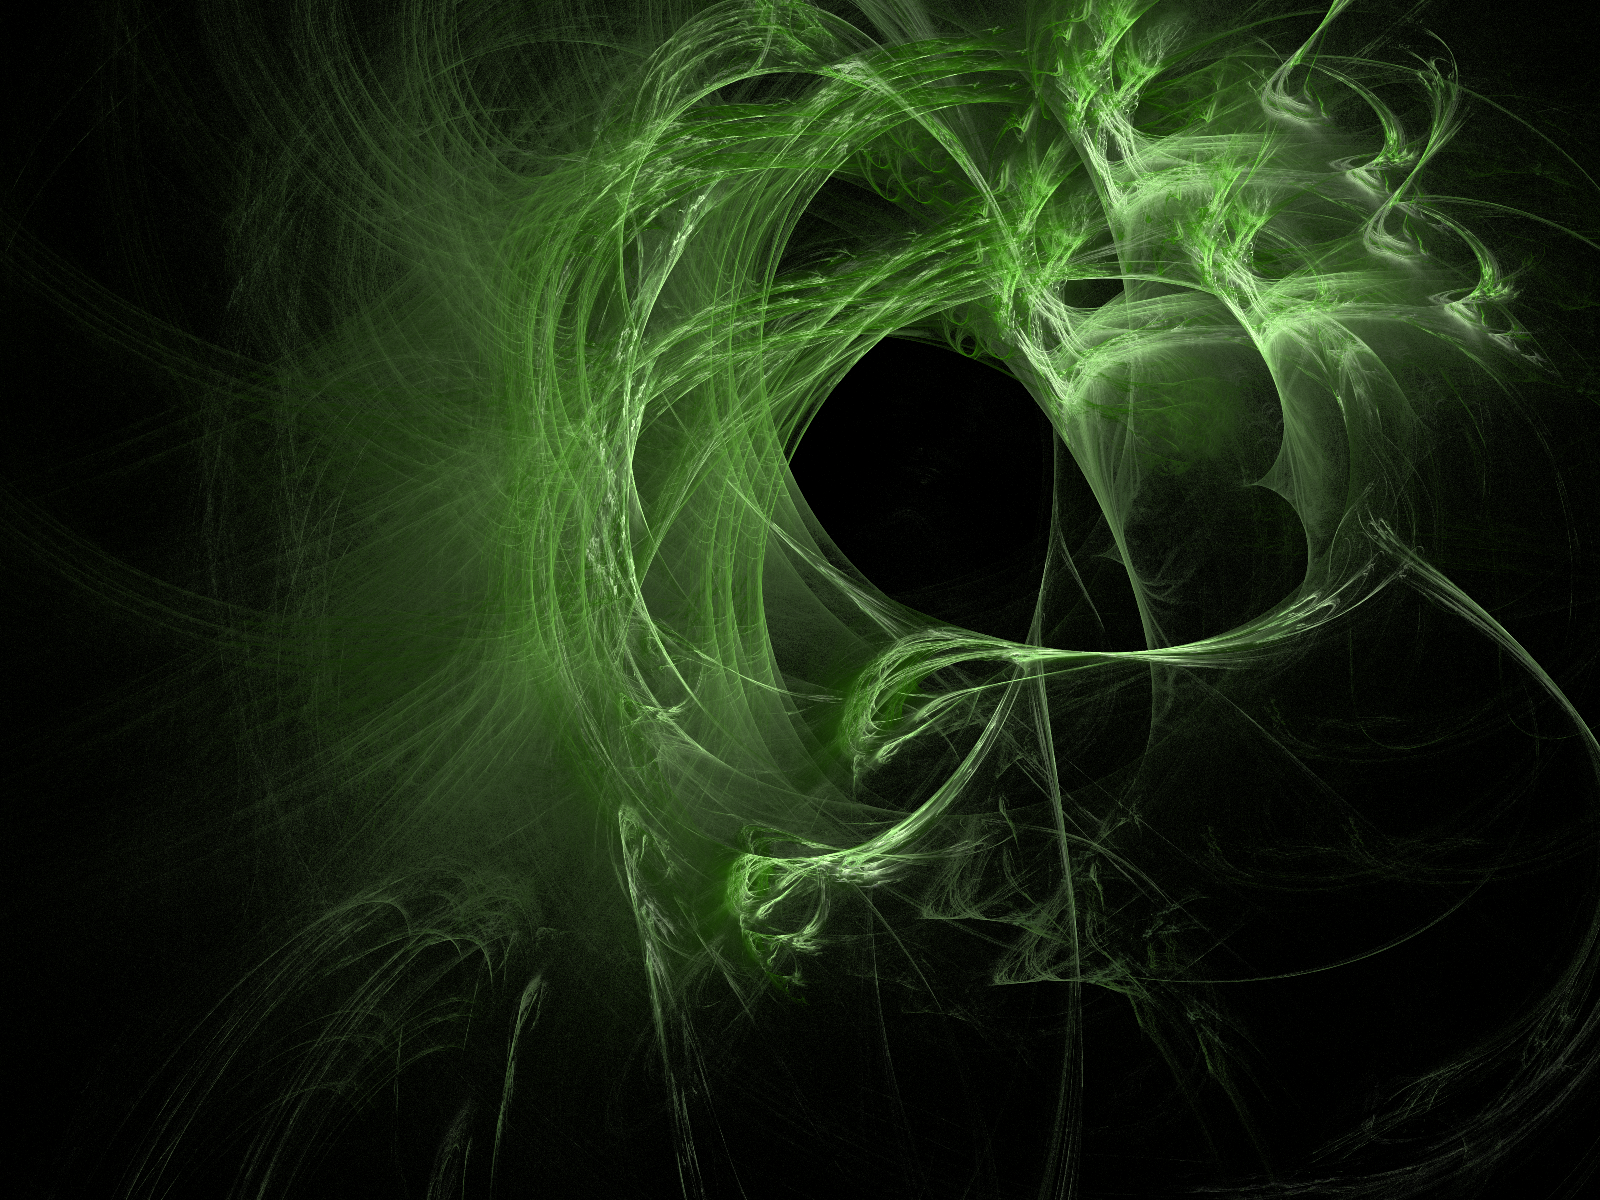 Abstract Animated Animated Wallpaper Linux Wallpaper